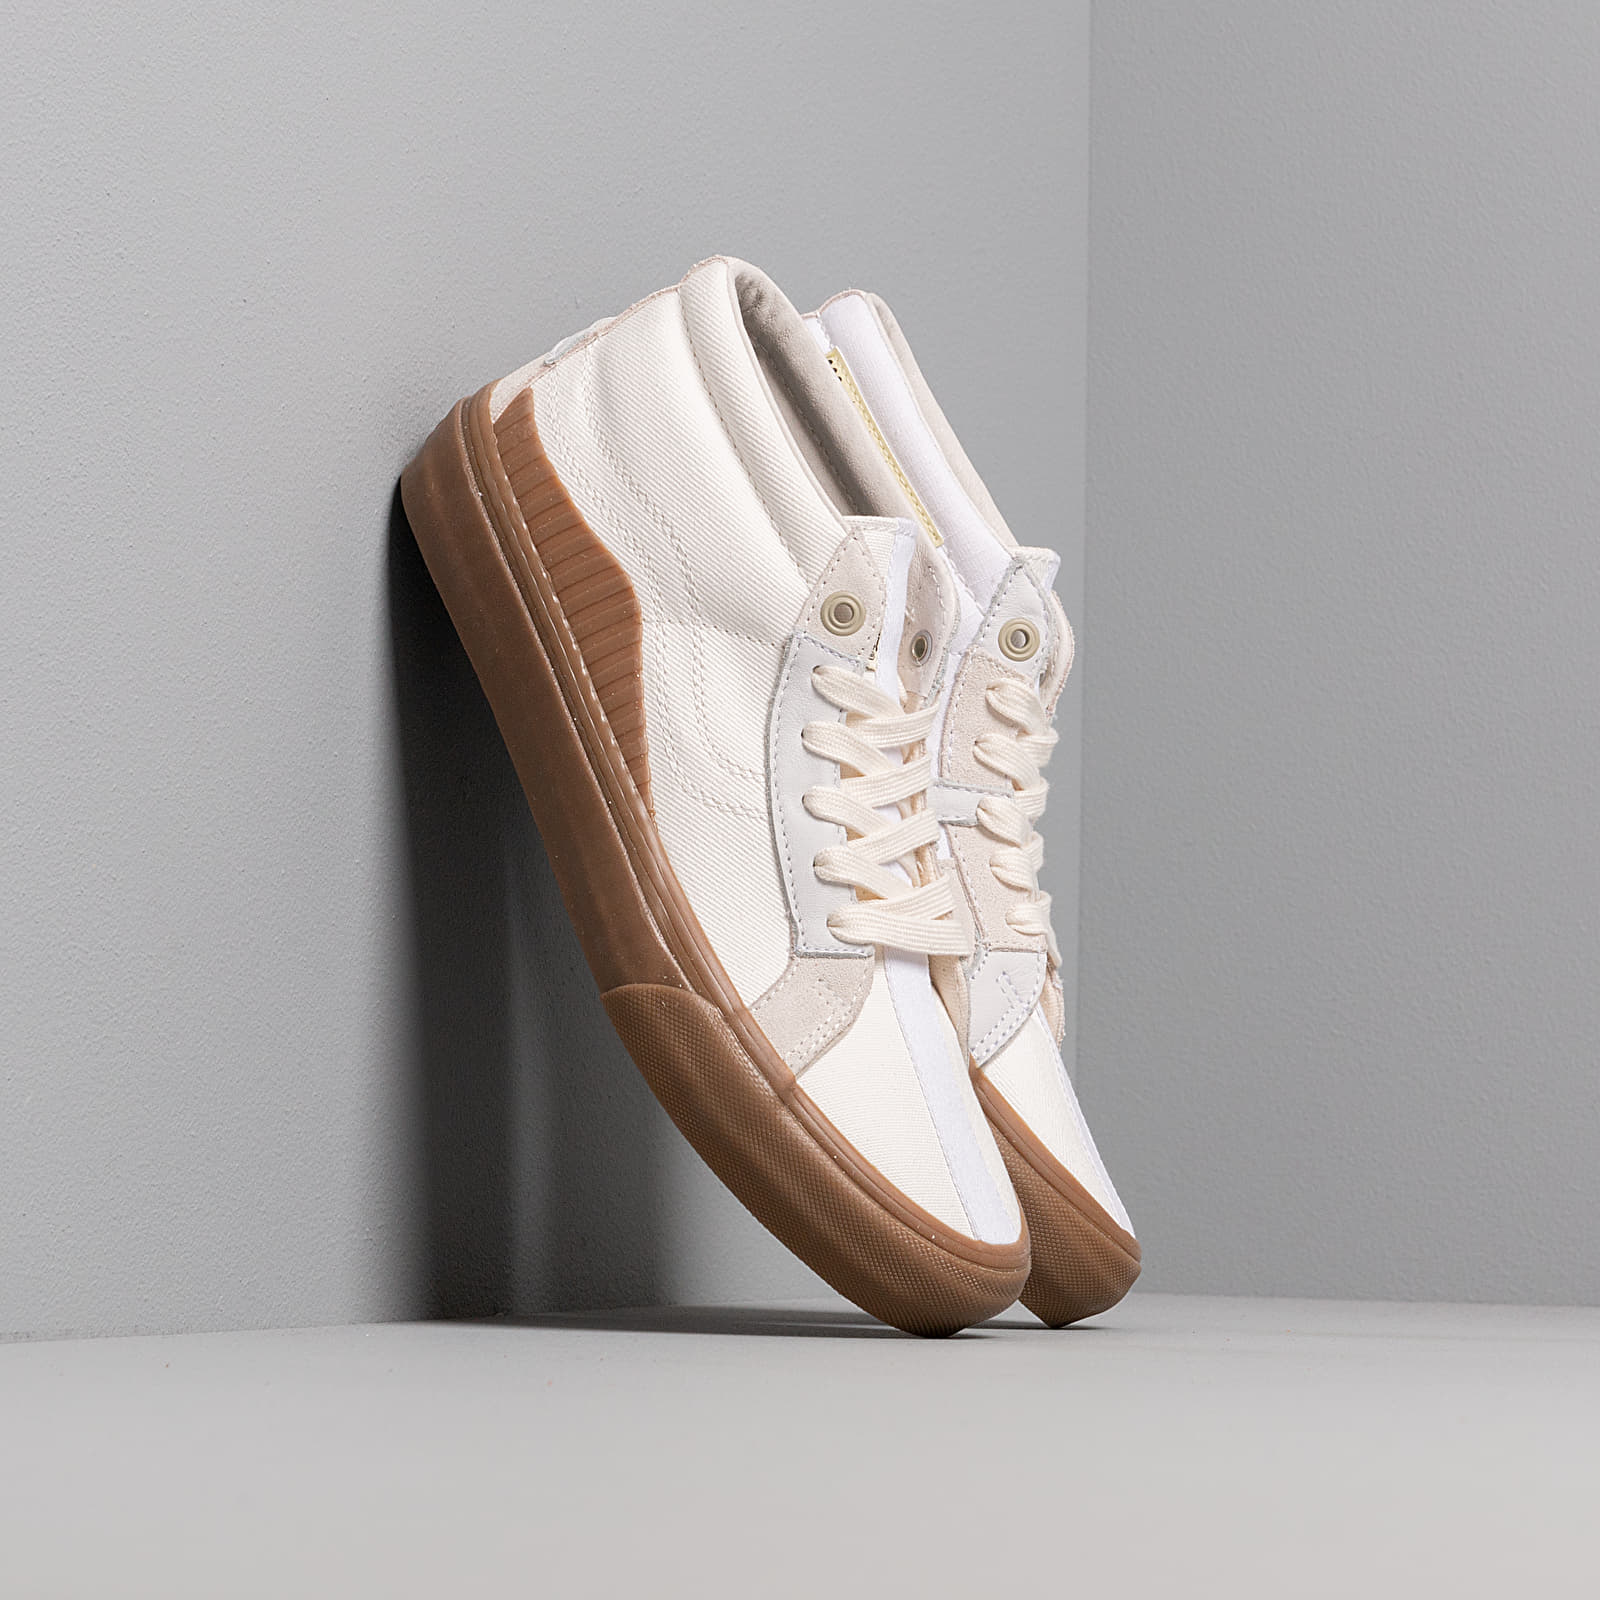 Vans x Taka Hayashi 138 Mid LX (Suede/ Canvas/ Leather)